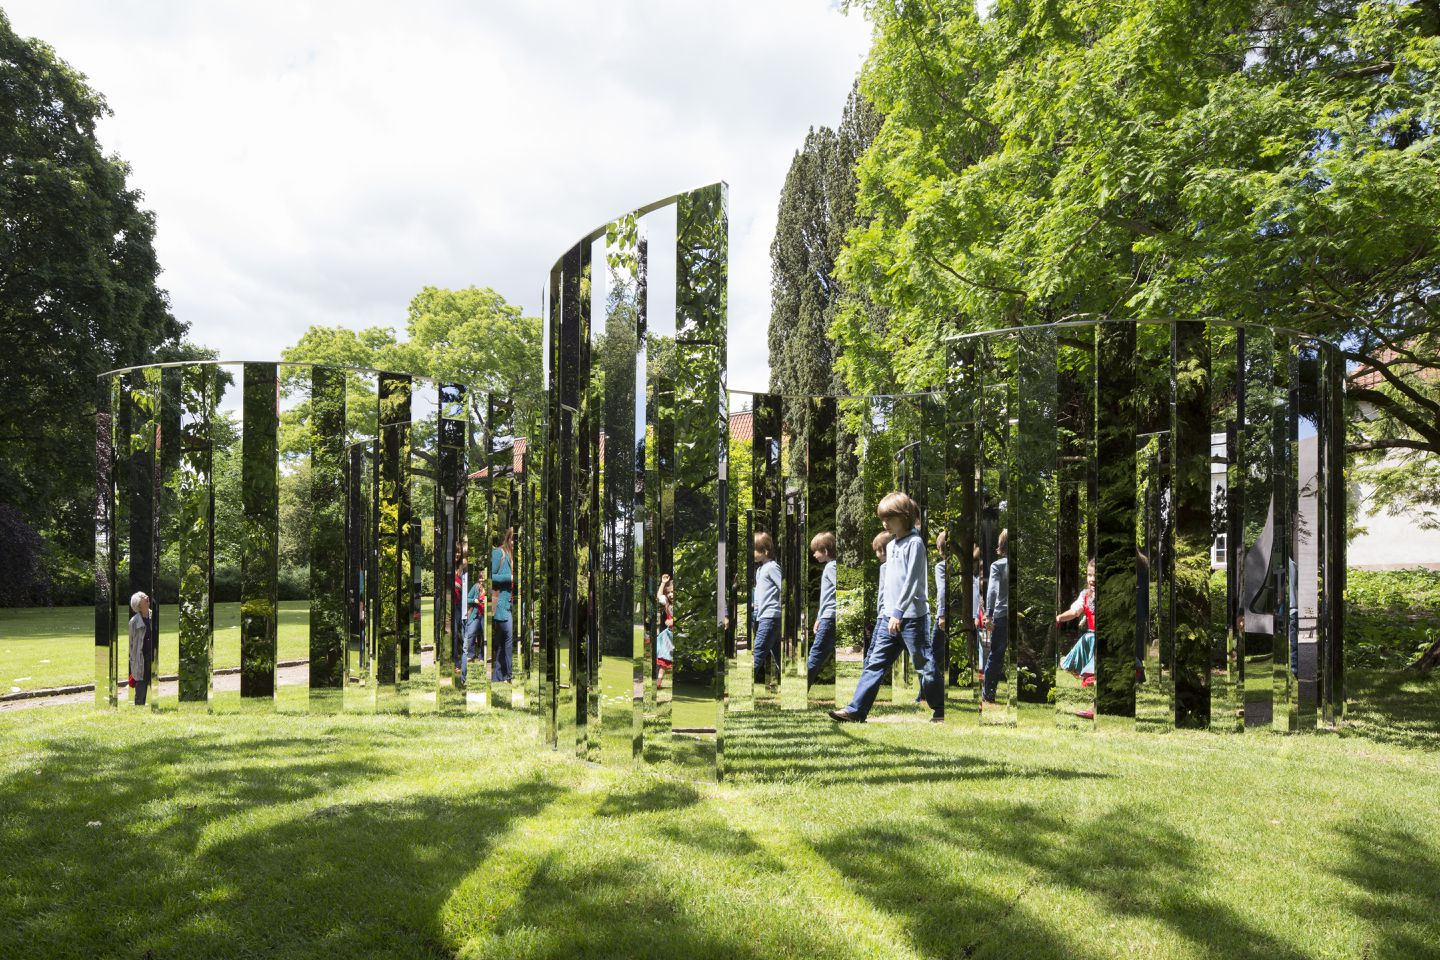 New Public Art Installations Are Coming To Trustees Land